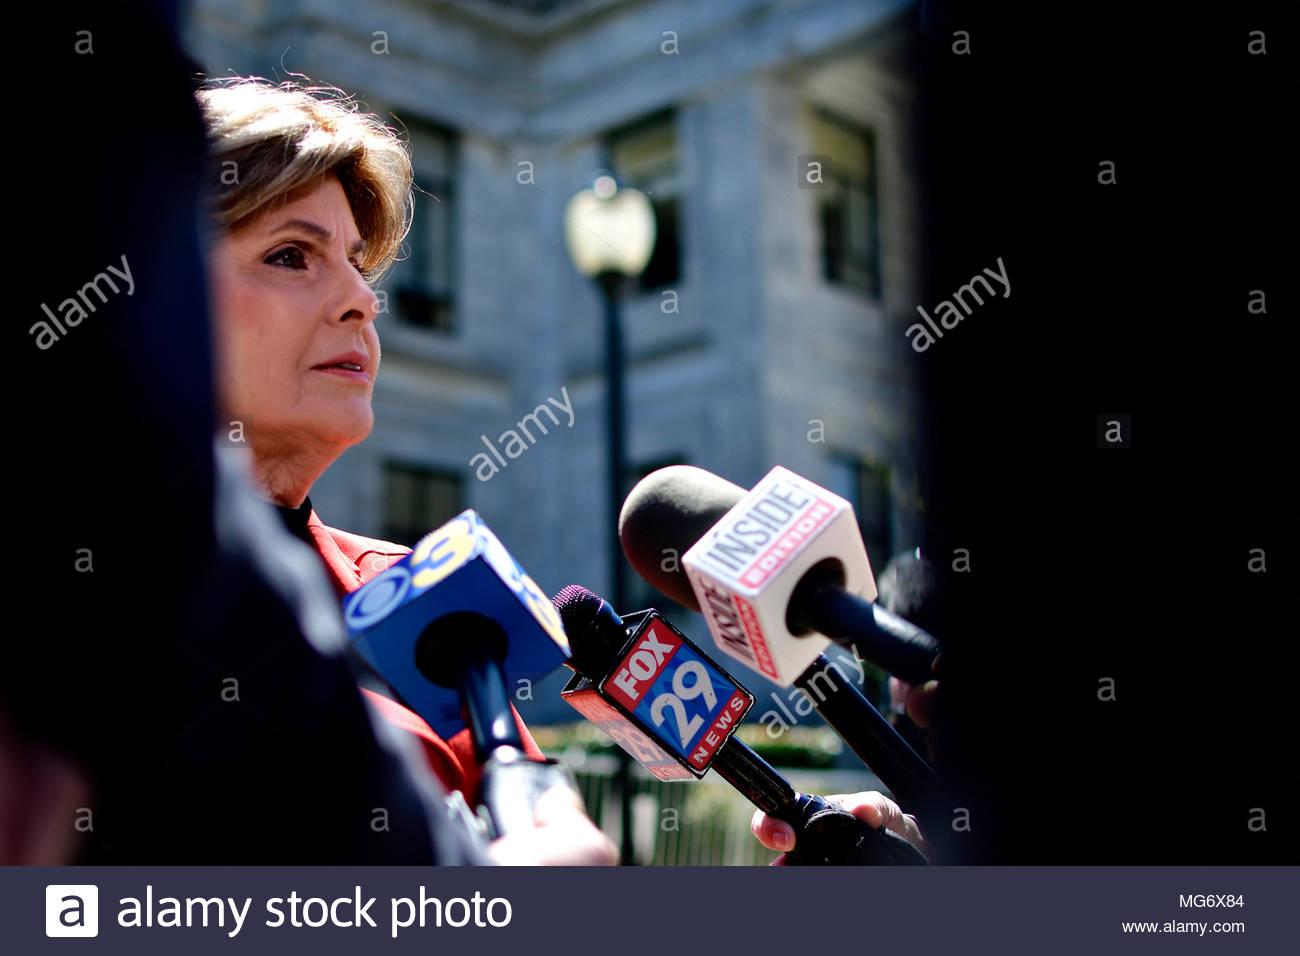 Norristown, USA. 26th Apr, 2018. Attorney Gloria Allred speaks to members of the media outside, during the Bill Cosby sexual assault trial at Montgomery County Court House in Norristown, PA, USA, on April 26, 2018. Credit: Bastiaan Slabbers/Alamy Live News - Stock Image